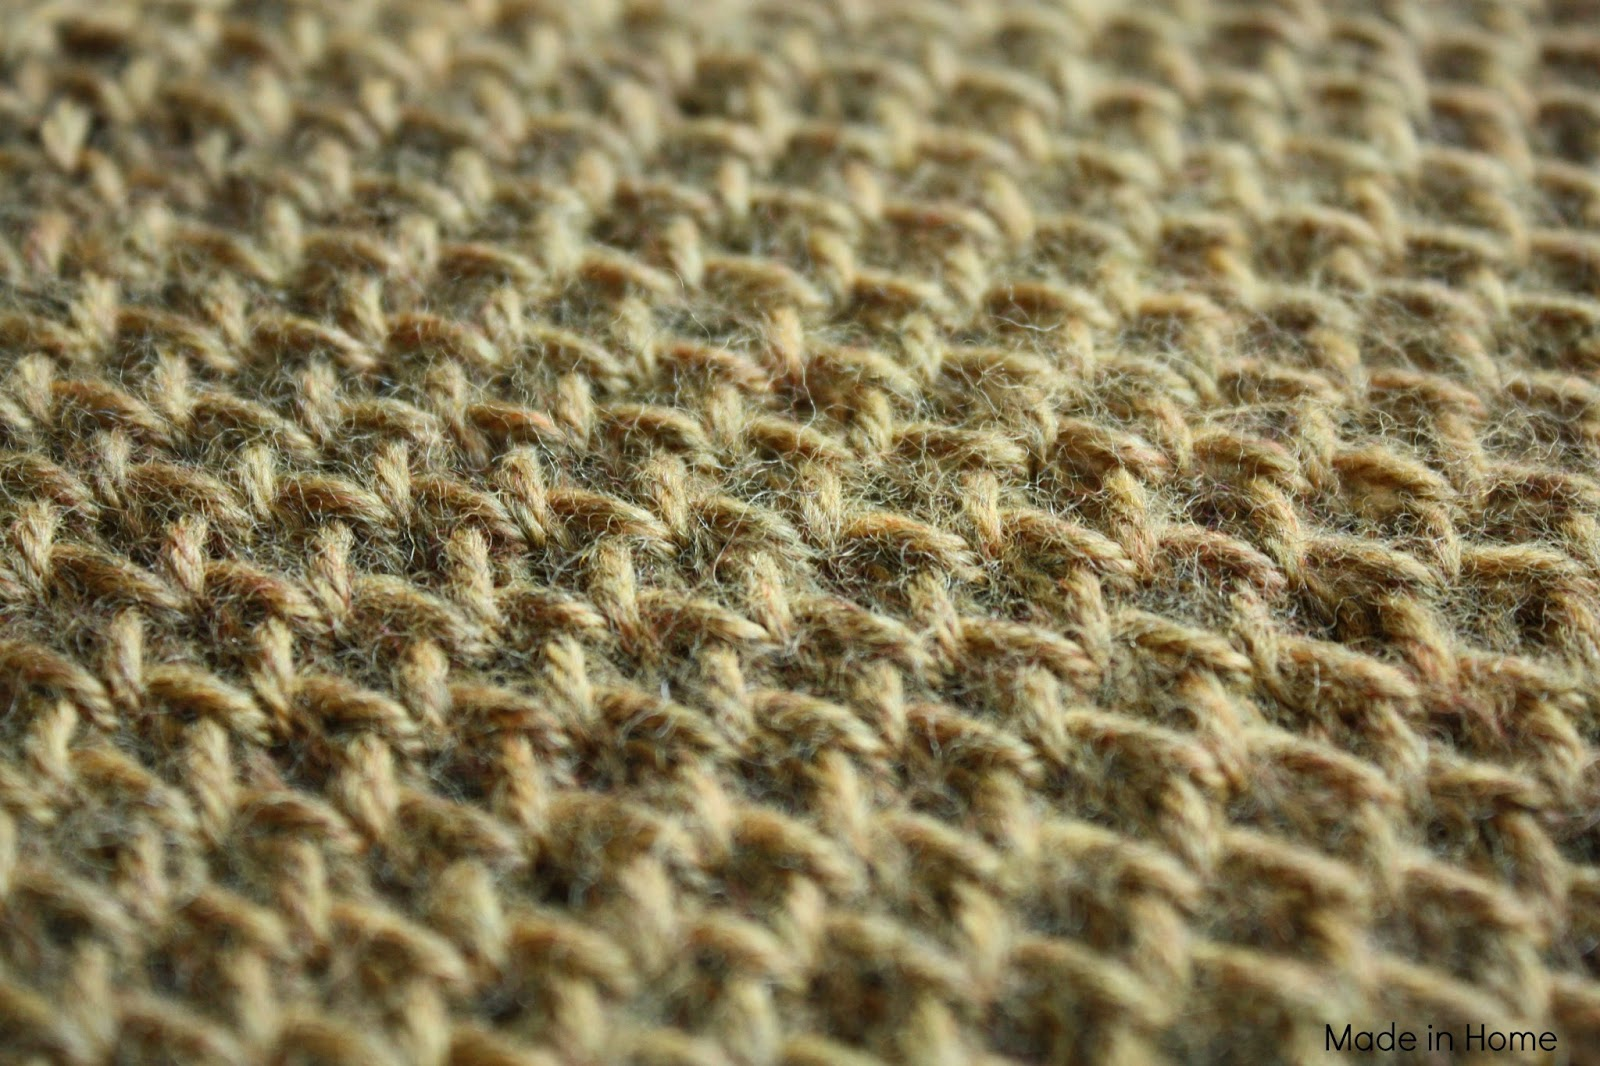 Knitting Increasing Stitches Make One : Made in Home: Study of honeycomb :: Knitting